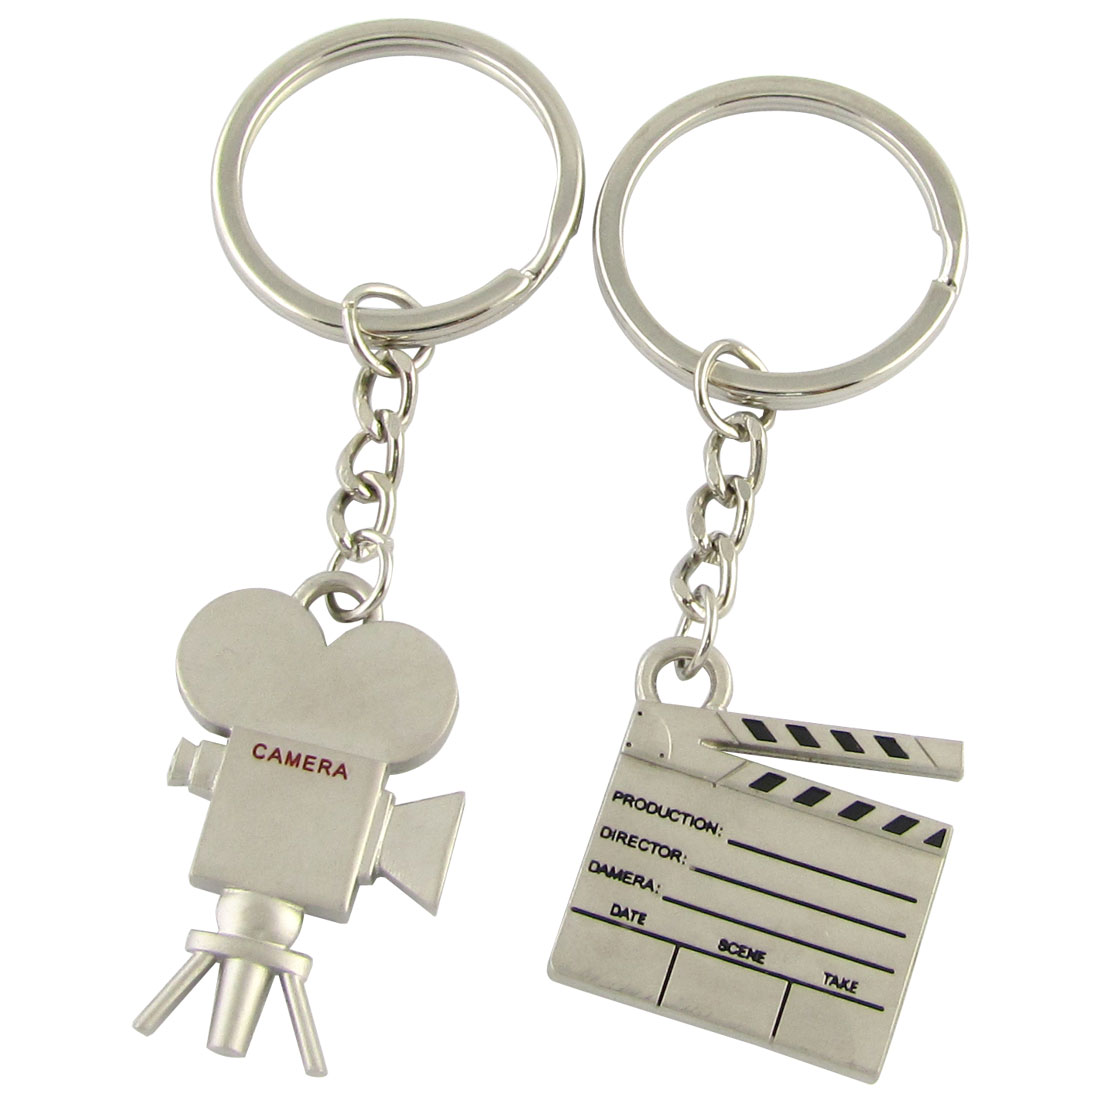 2 Pcs Metal Silver Tone Film Clipboard Camera Key Chain Ring